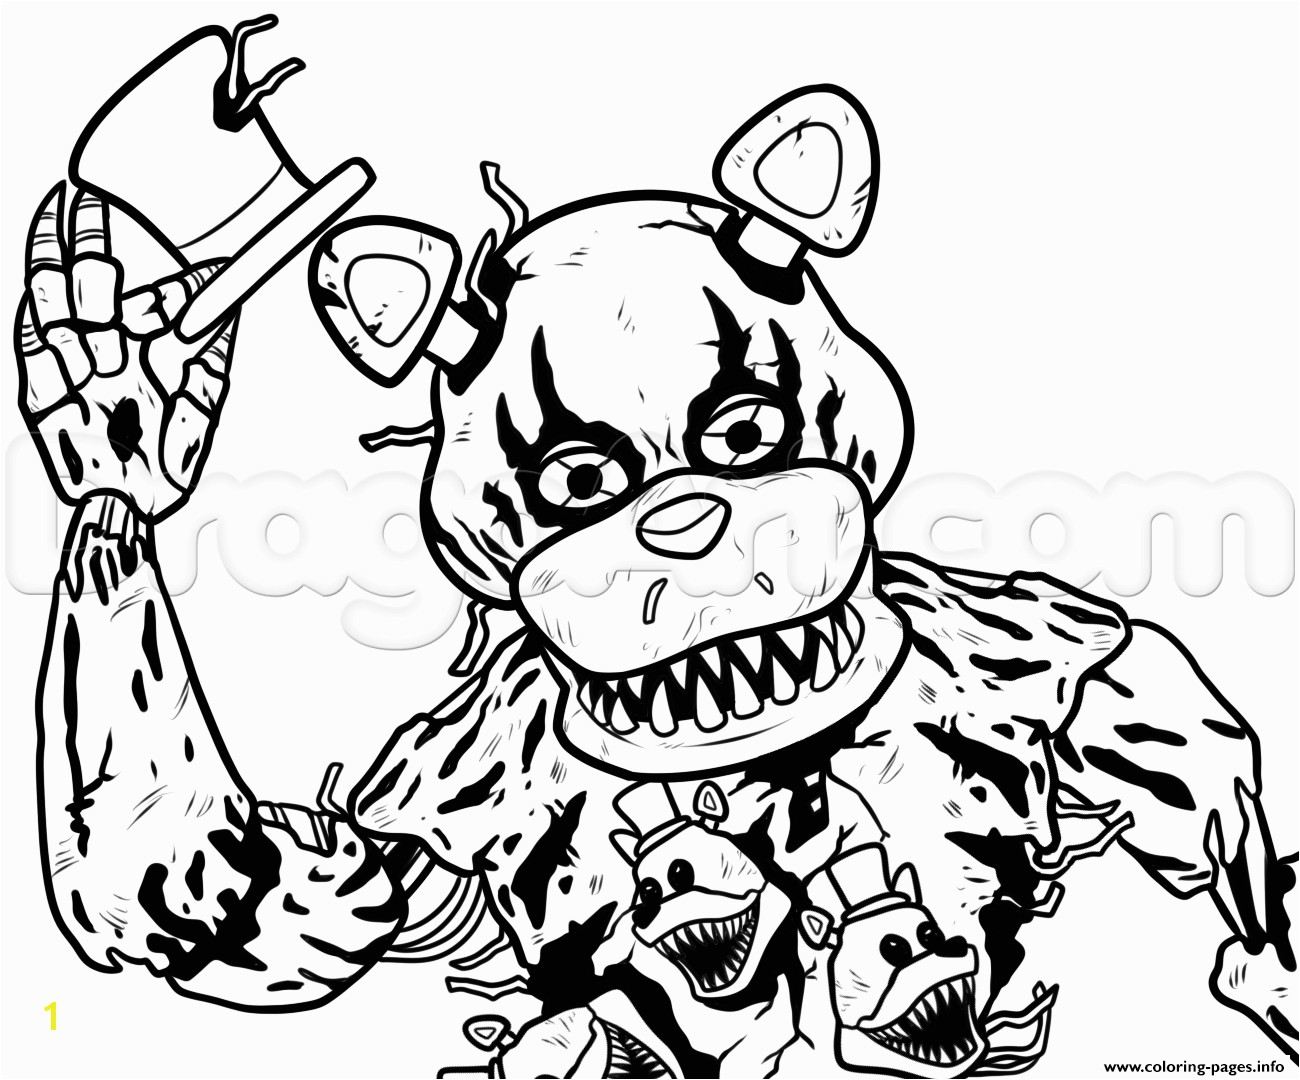 Reliable Freddy Fazbear Coloring Page Print Draw Nightmare Five Nights At Freddys Fnaf